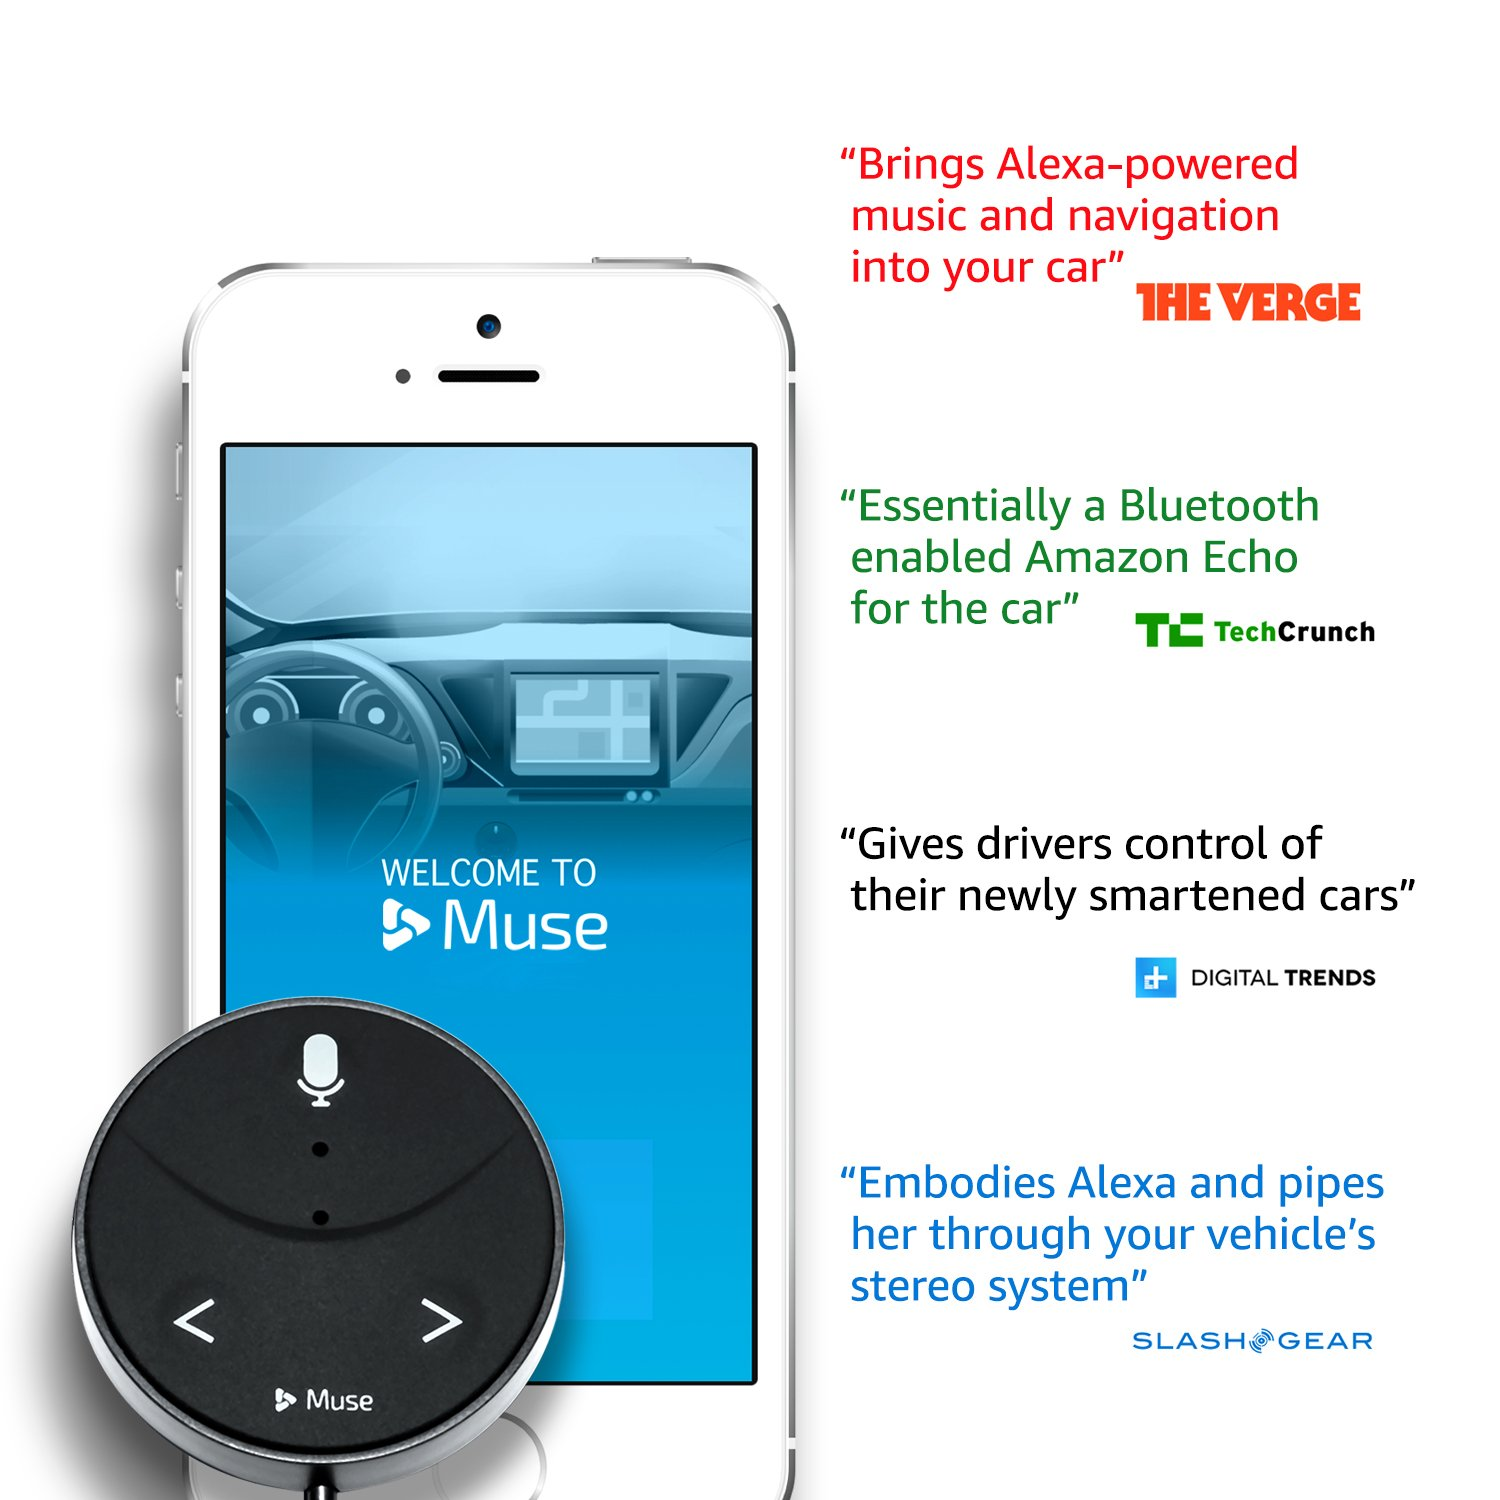 Muse Auto Second Generation: Alexa-Enabled Voice Assistant for Cars with Hands-Free Music, Audiobooks, Navigation and 2-Port USB Car Charger